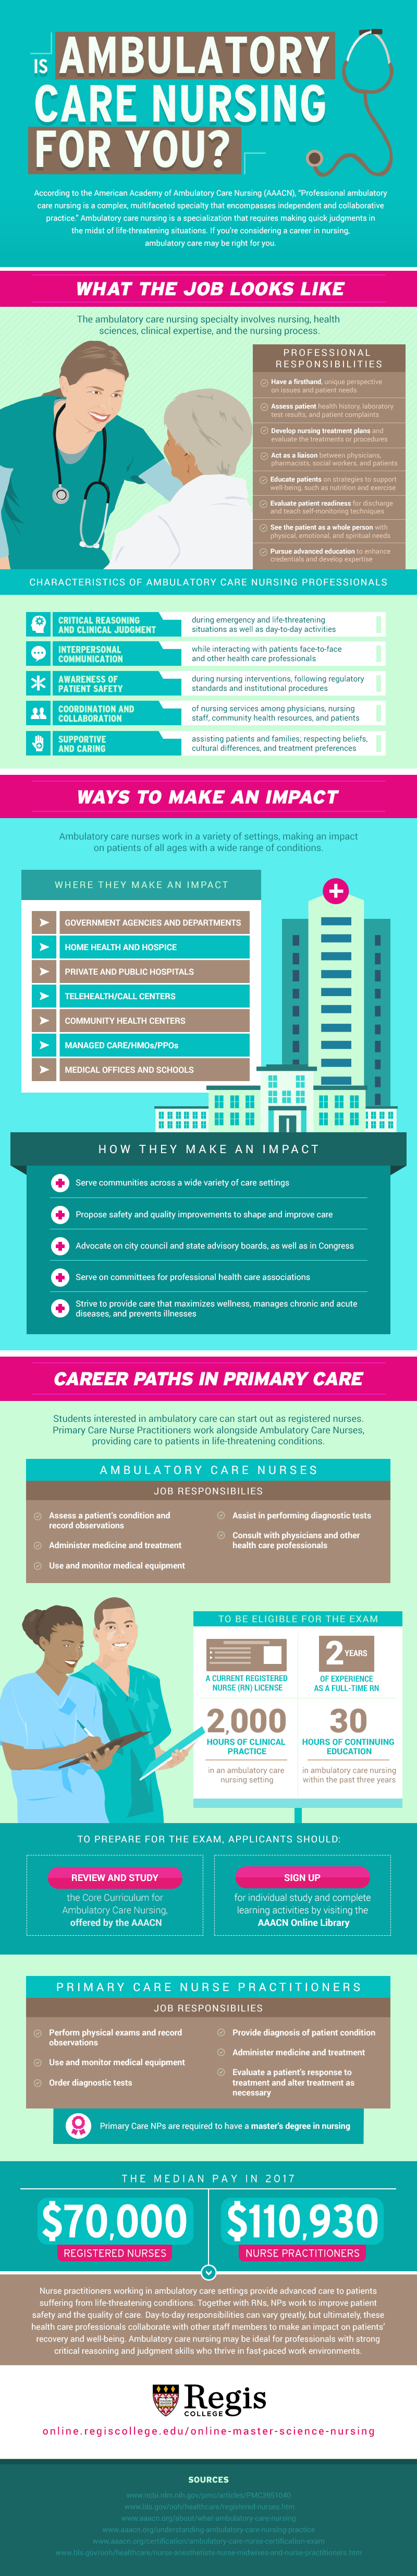 A look at the role of the ambulatory care nurse, including the steps RNs need to take to fill the position.